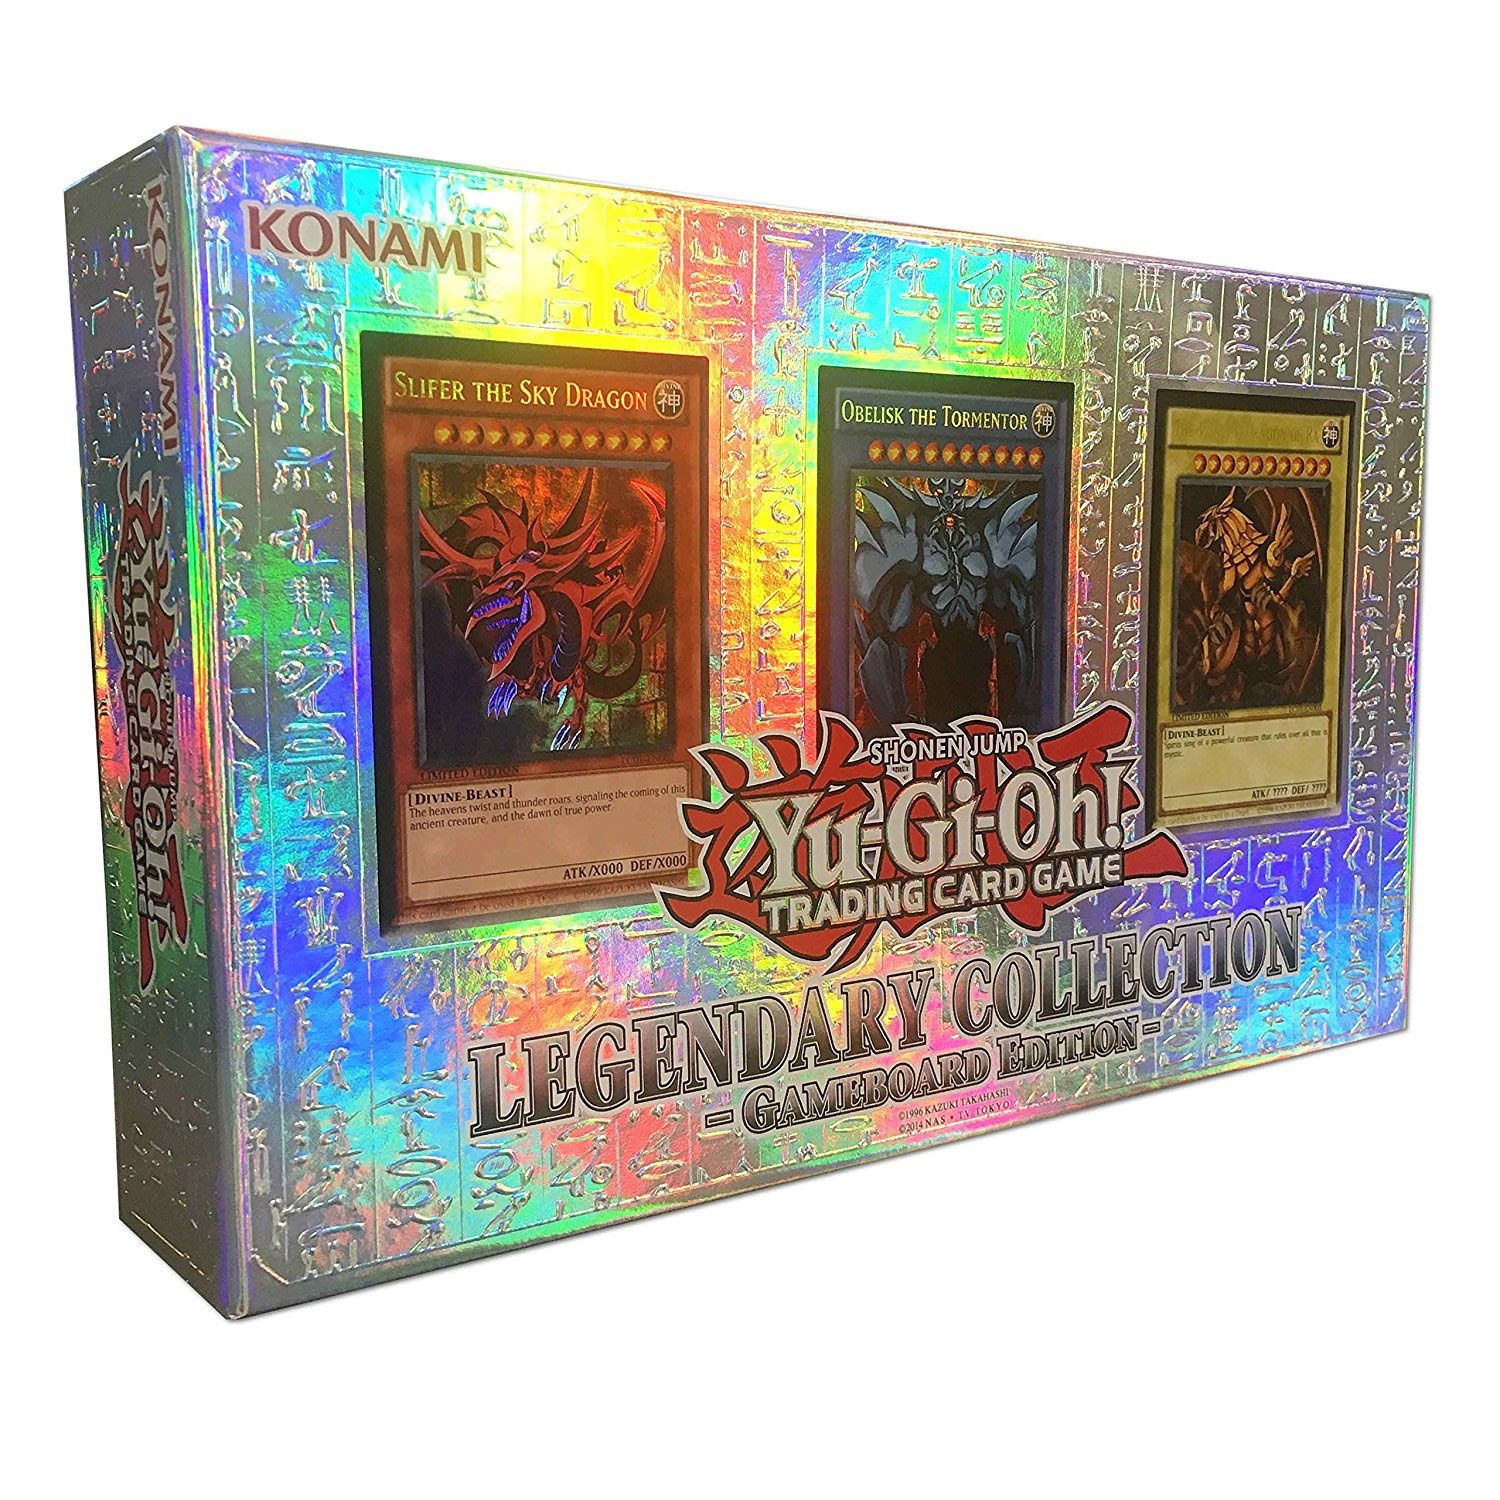 Yu-Gi-Oh! Box Set Legendary Collection 1 Gameboard Edition *German Version*